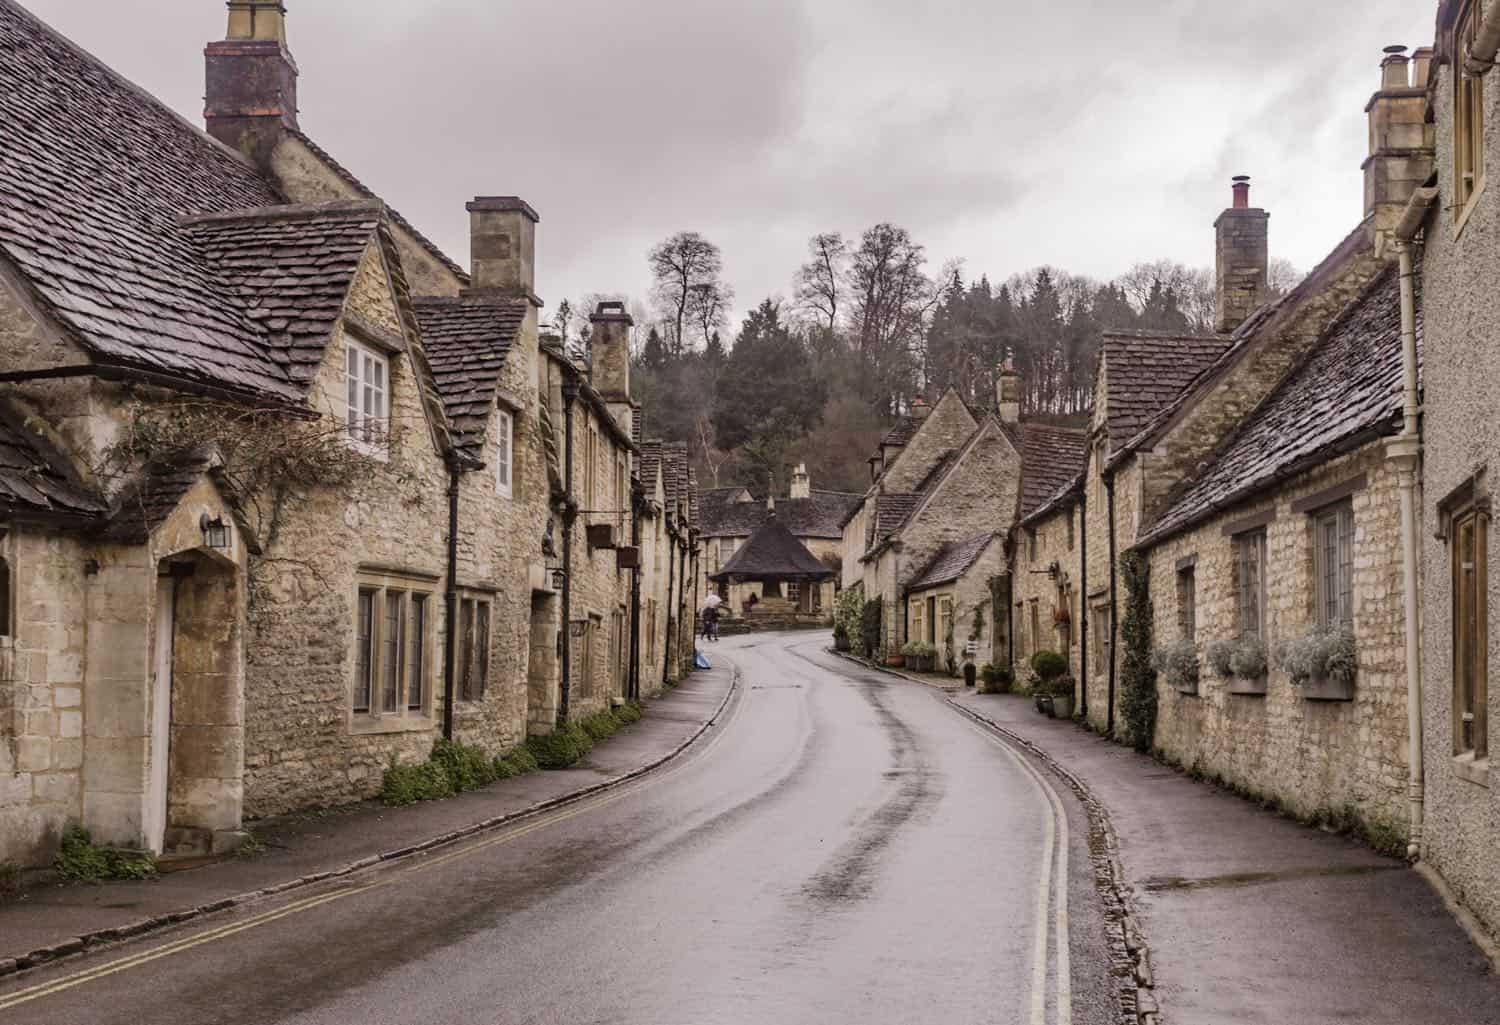 Two Magical English Towns to Add to Your Bucket List : Castle Combe and Lacock